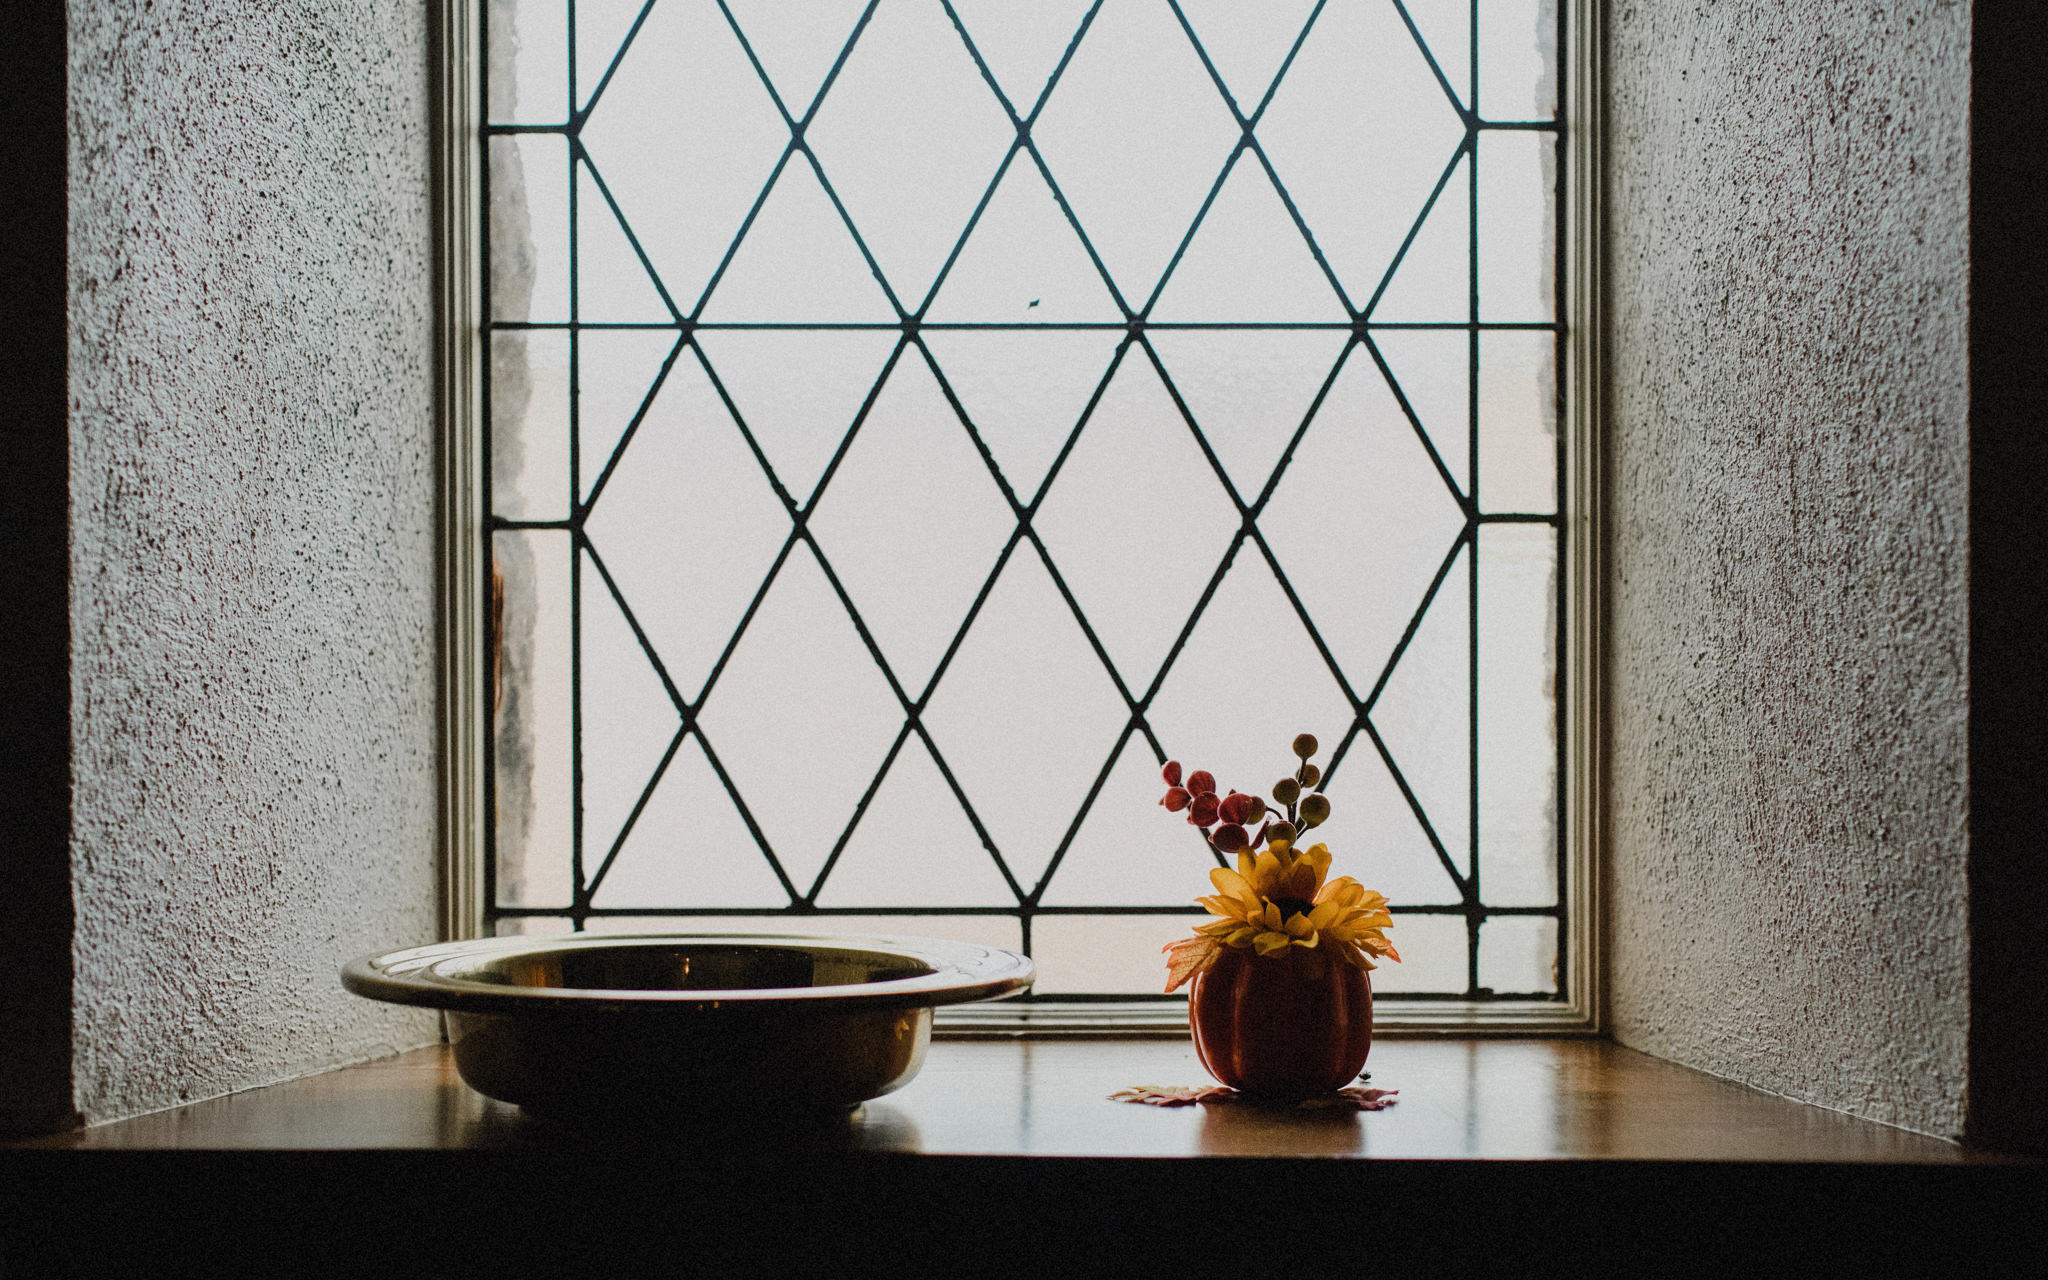 offering dish by church window